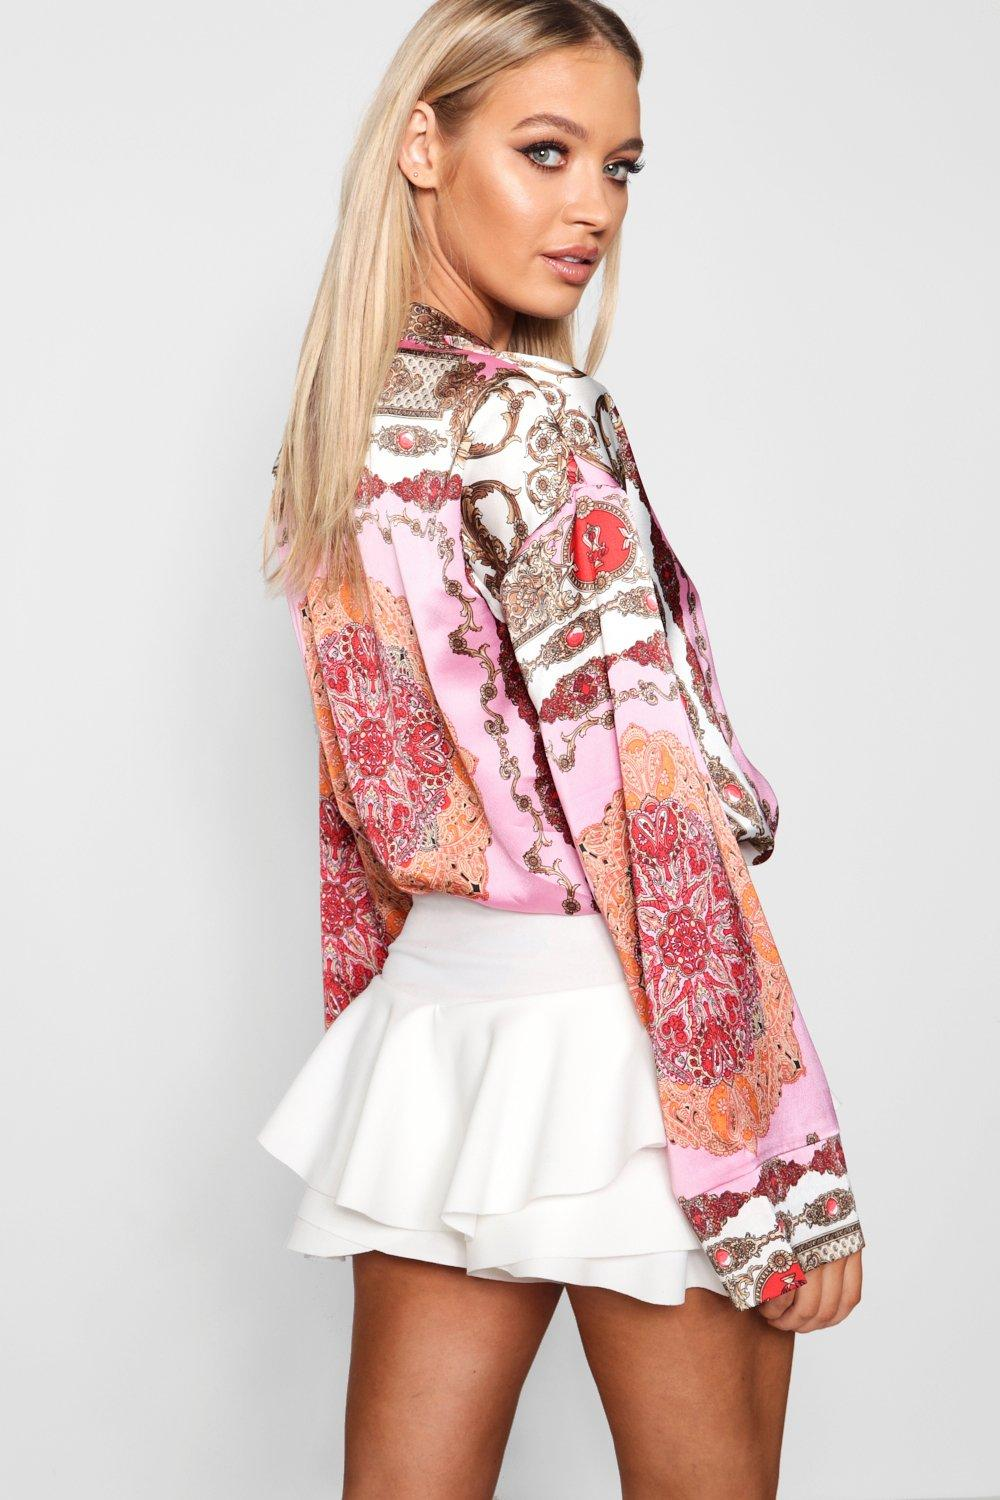 Shirt Sleeve Flare Scarf Scarf Flare Scarf Flare Shirt pink pink Sleeve TS11dxw